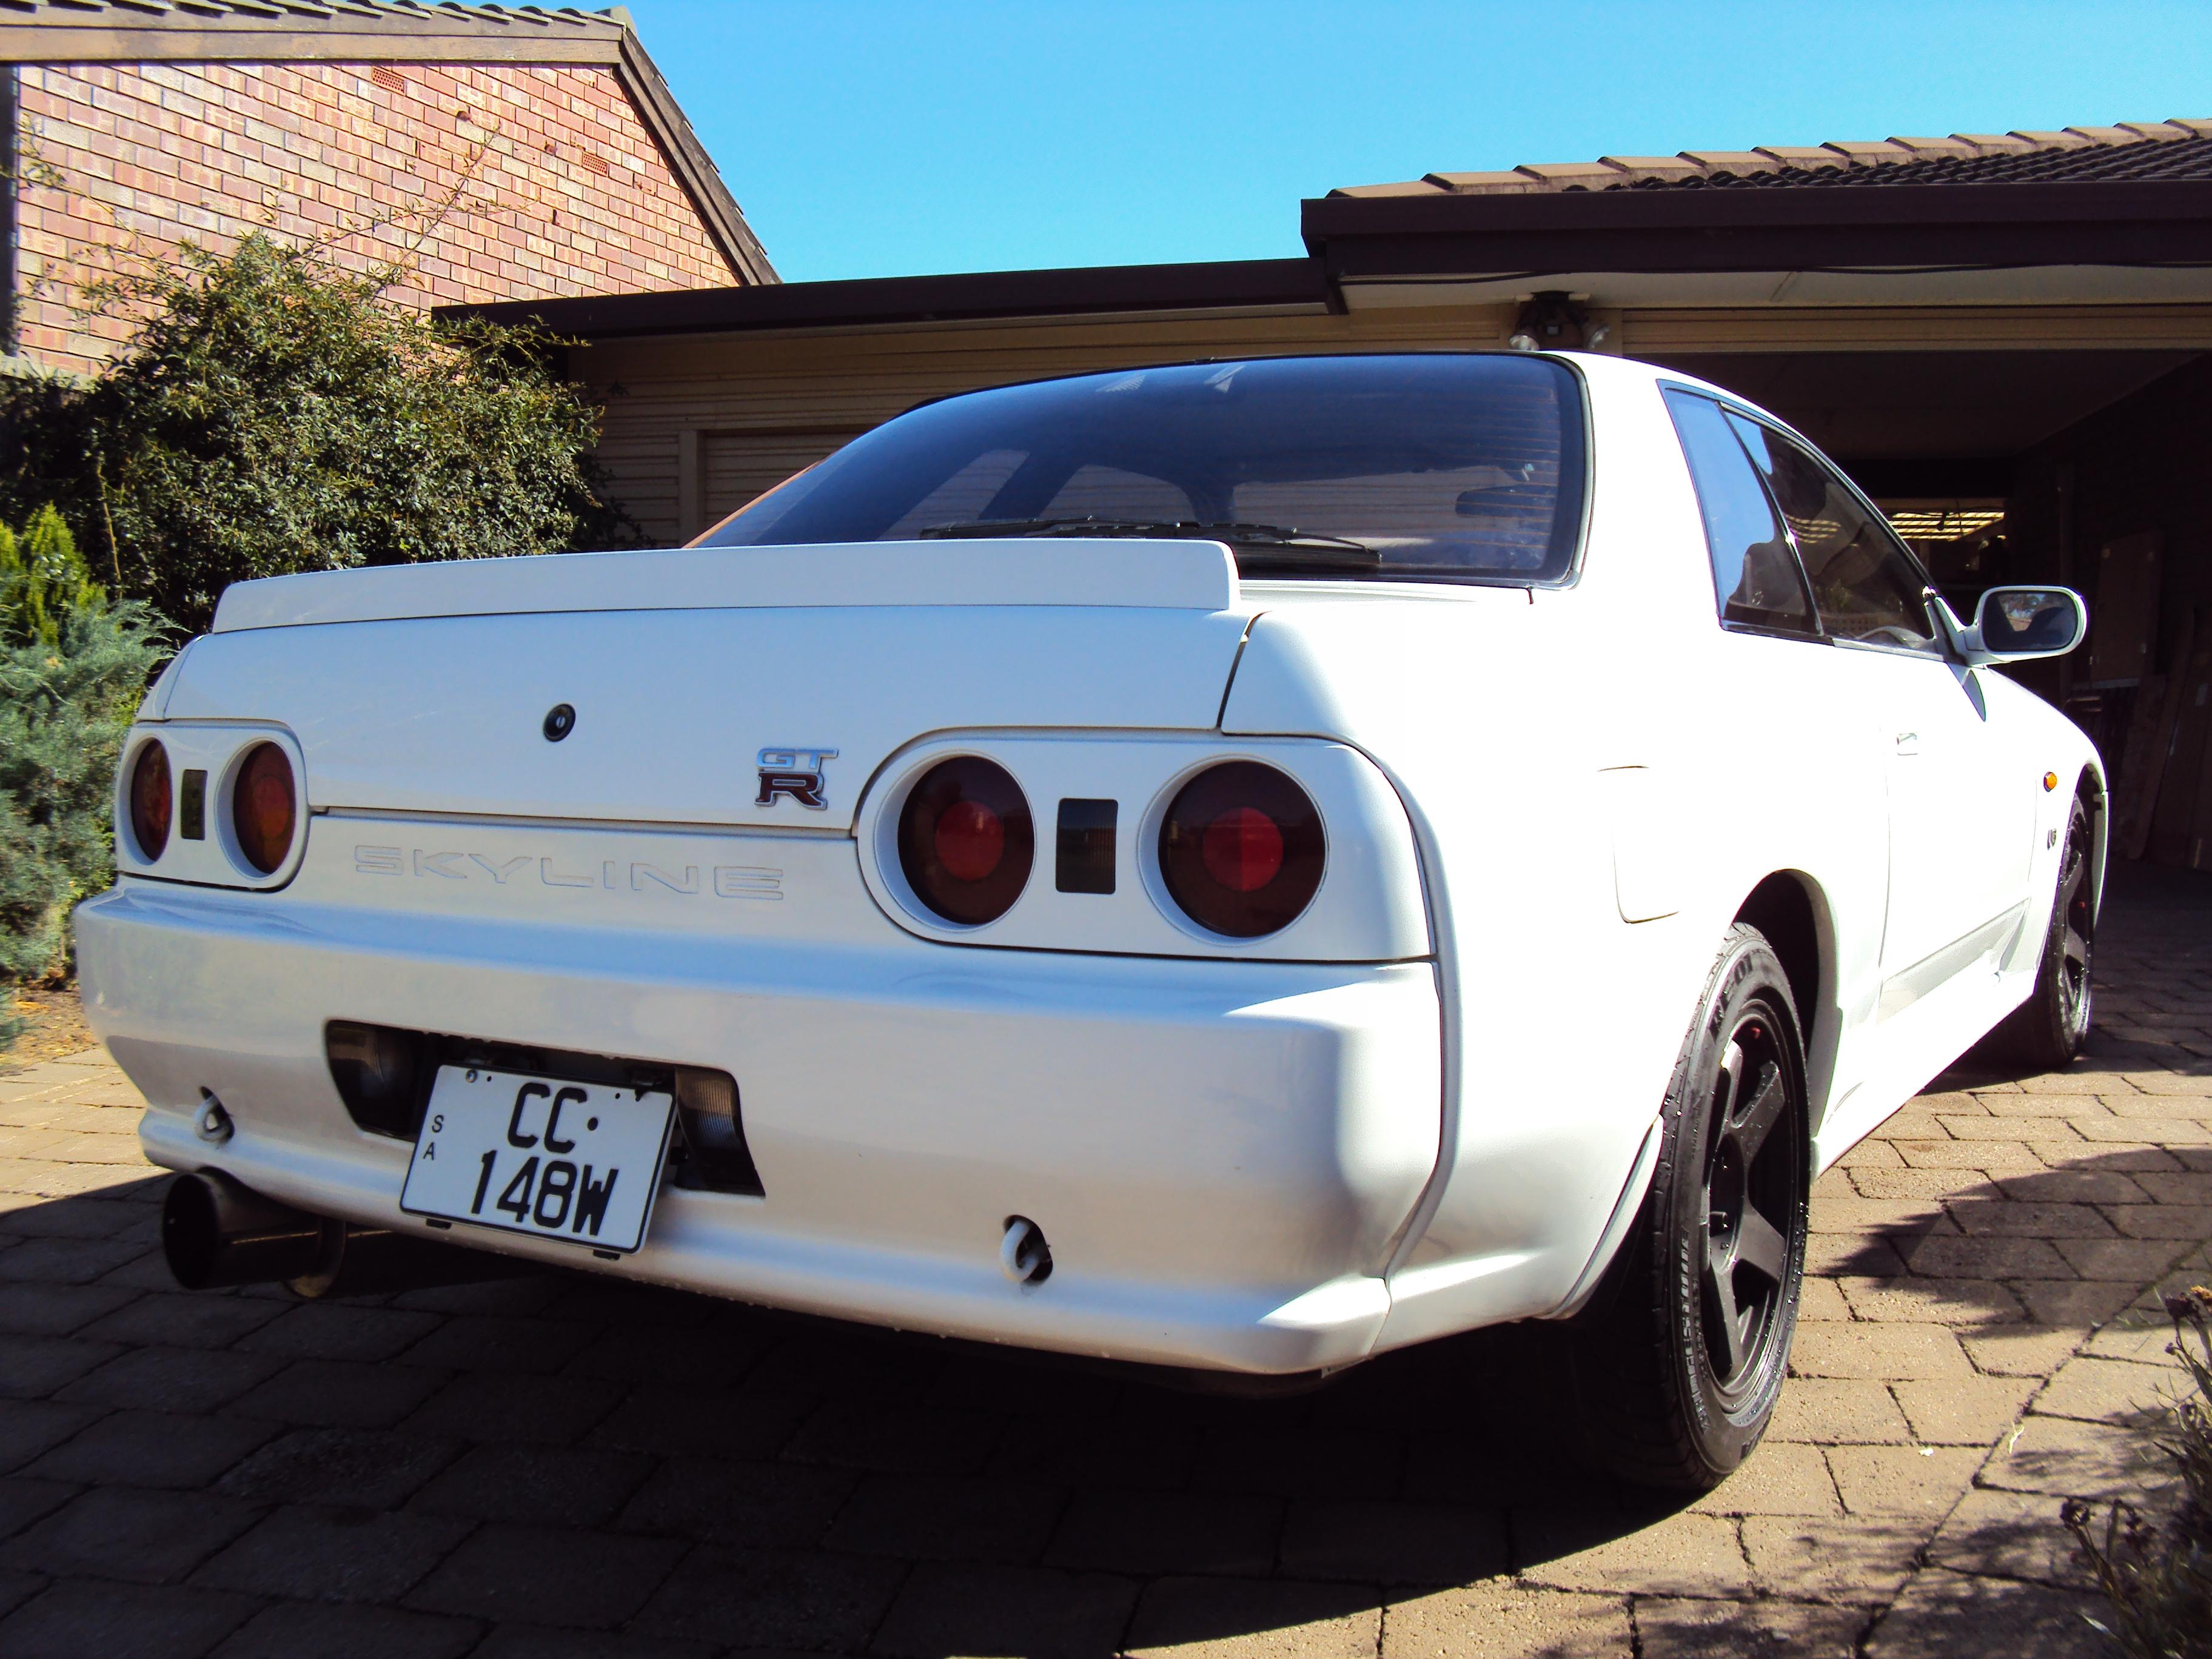 Nissan Skyline R32 Gtr 1993 N1 Turbos - For Sale (Private